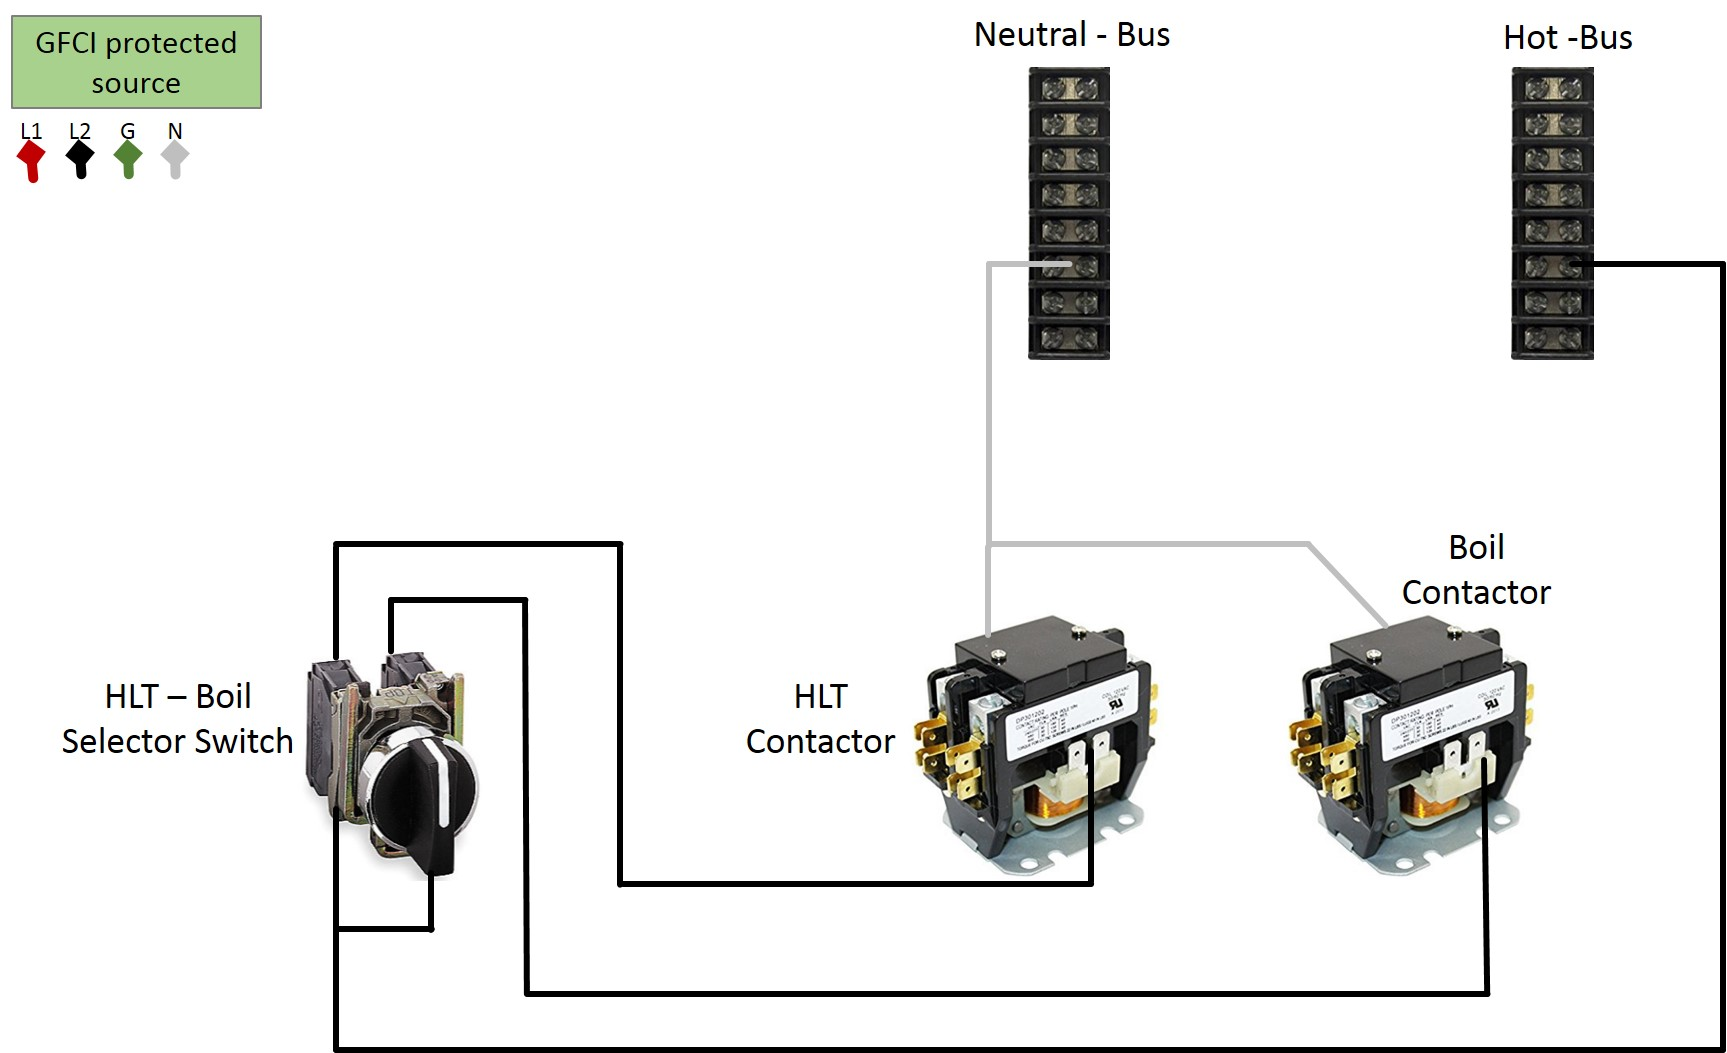 packard c230b 2 pole 30 amp - 120v vs 240v – control panel q&a – e-herms  brewery build forum  skrilnetz